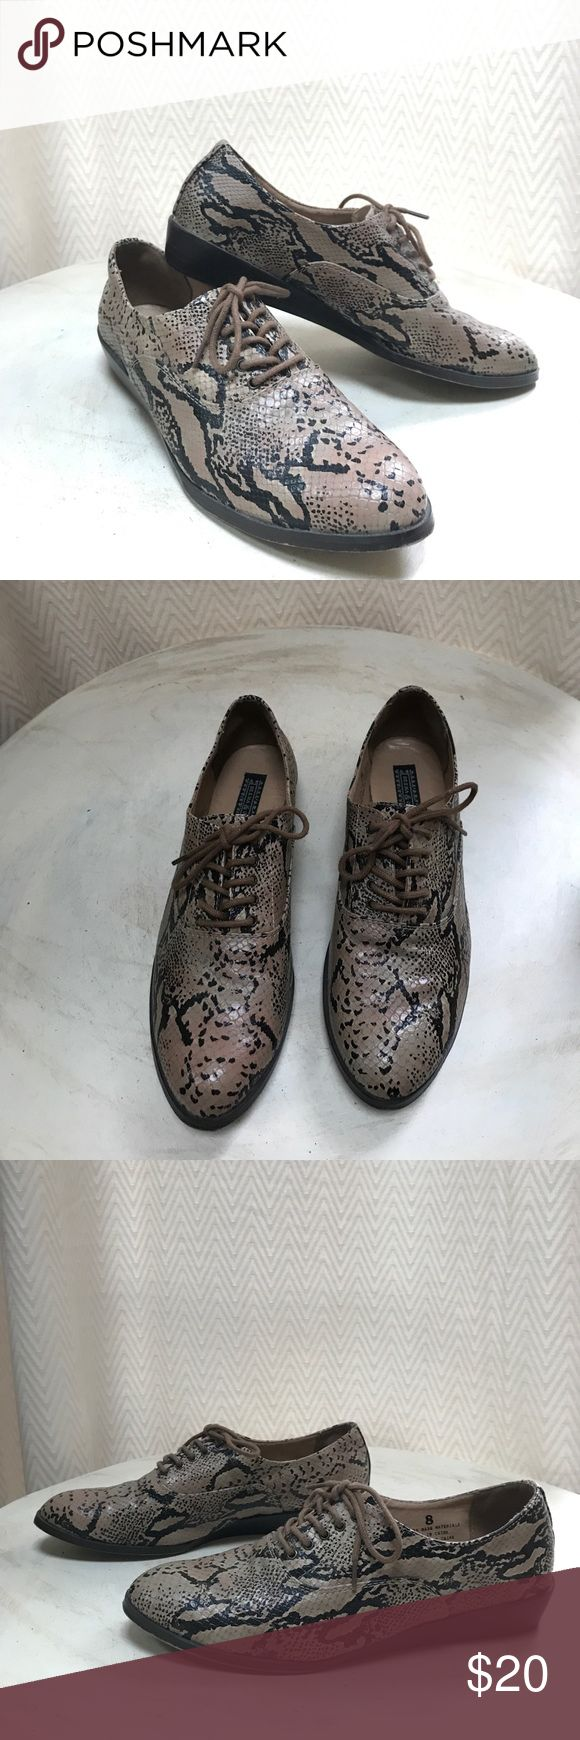 Deena & Ozzy Snakeskin Print Oxfords Deena & Ozzy Urban Outfitters wedge oxfords. Size 8. Never worn outside- worn once around the house but just weren't my size. Soles have very little wear. Runs true to size. Deena & Ozzy Shoes Flats & Loafers